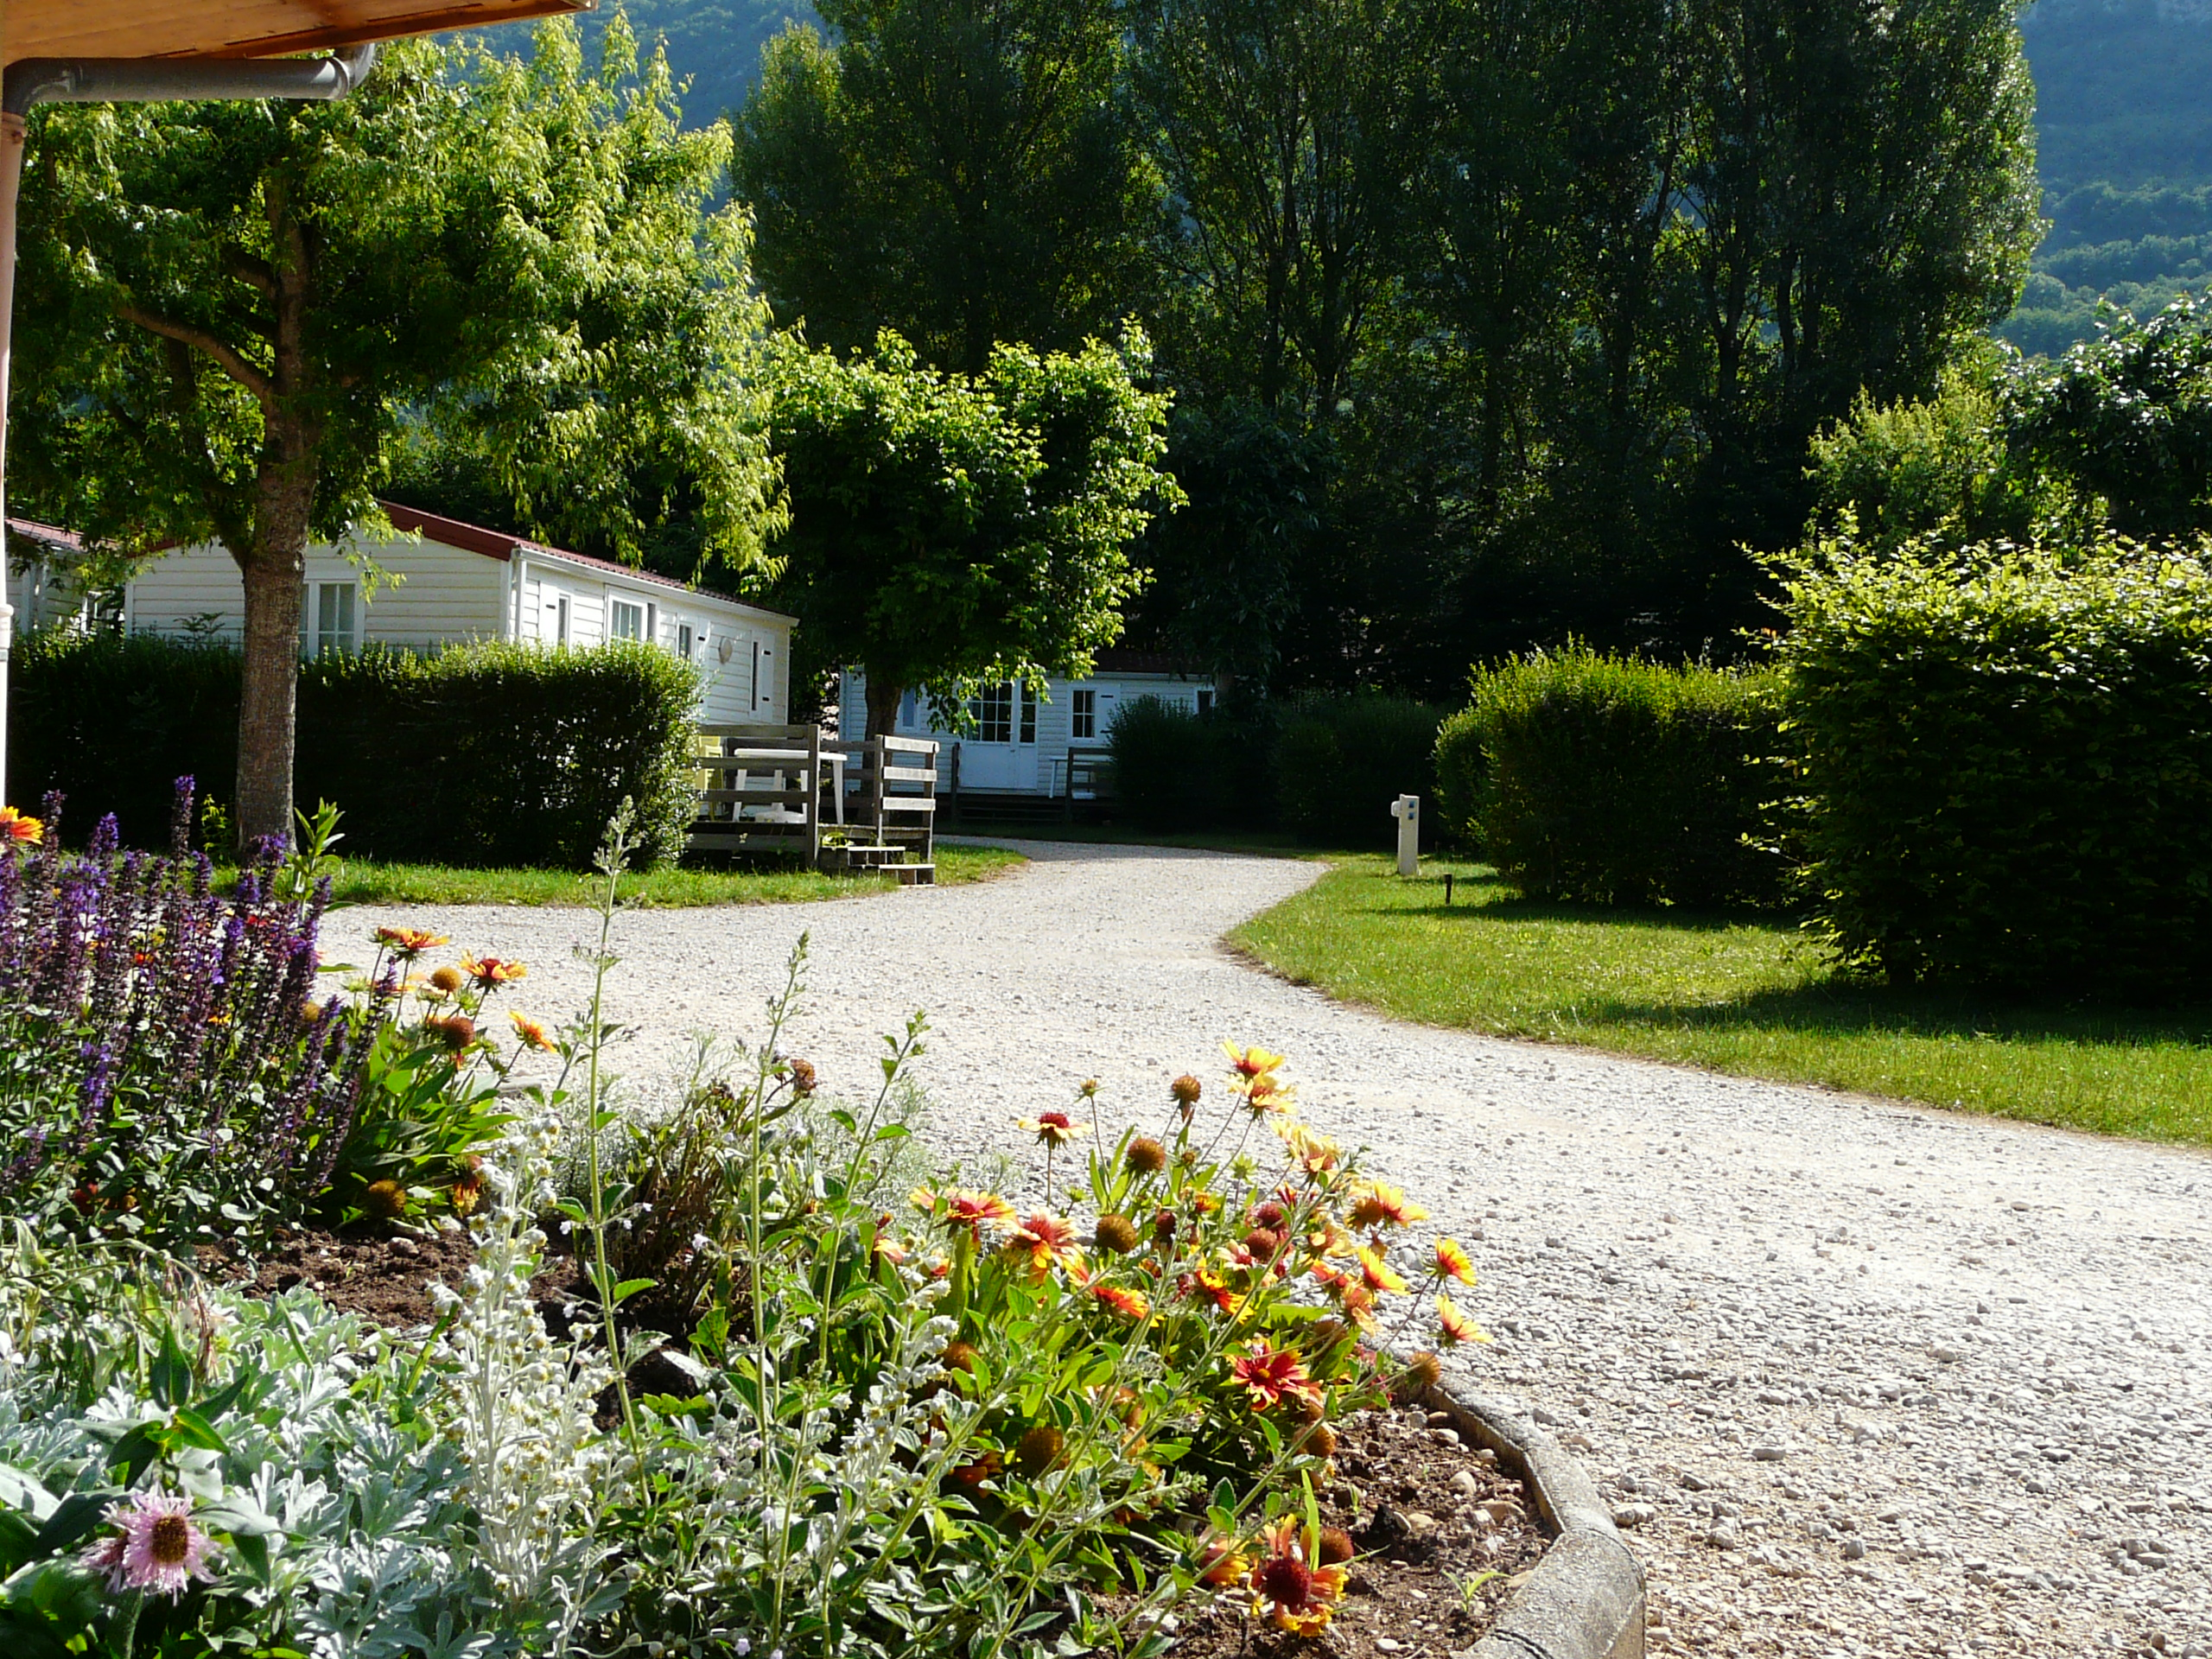 Camping les peupliers du lac mairie de chindrieux for Camping lac du bourget piscine